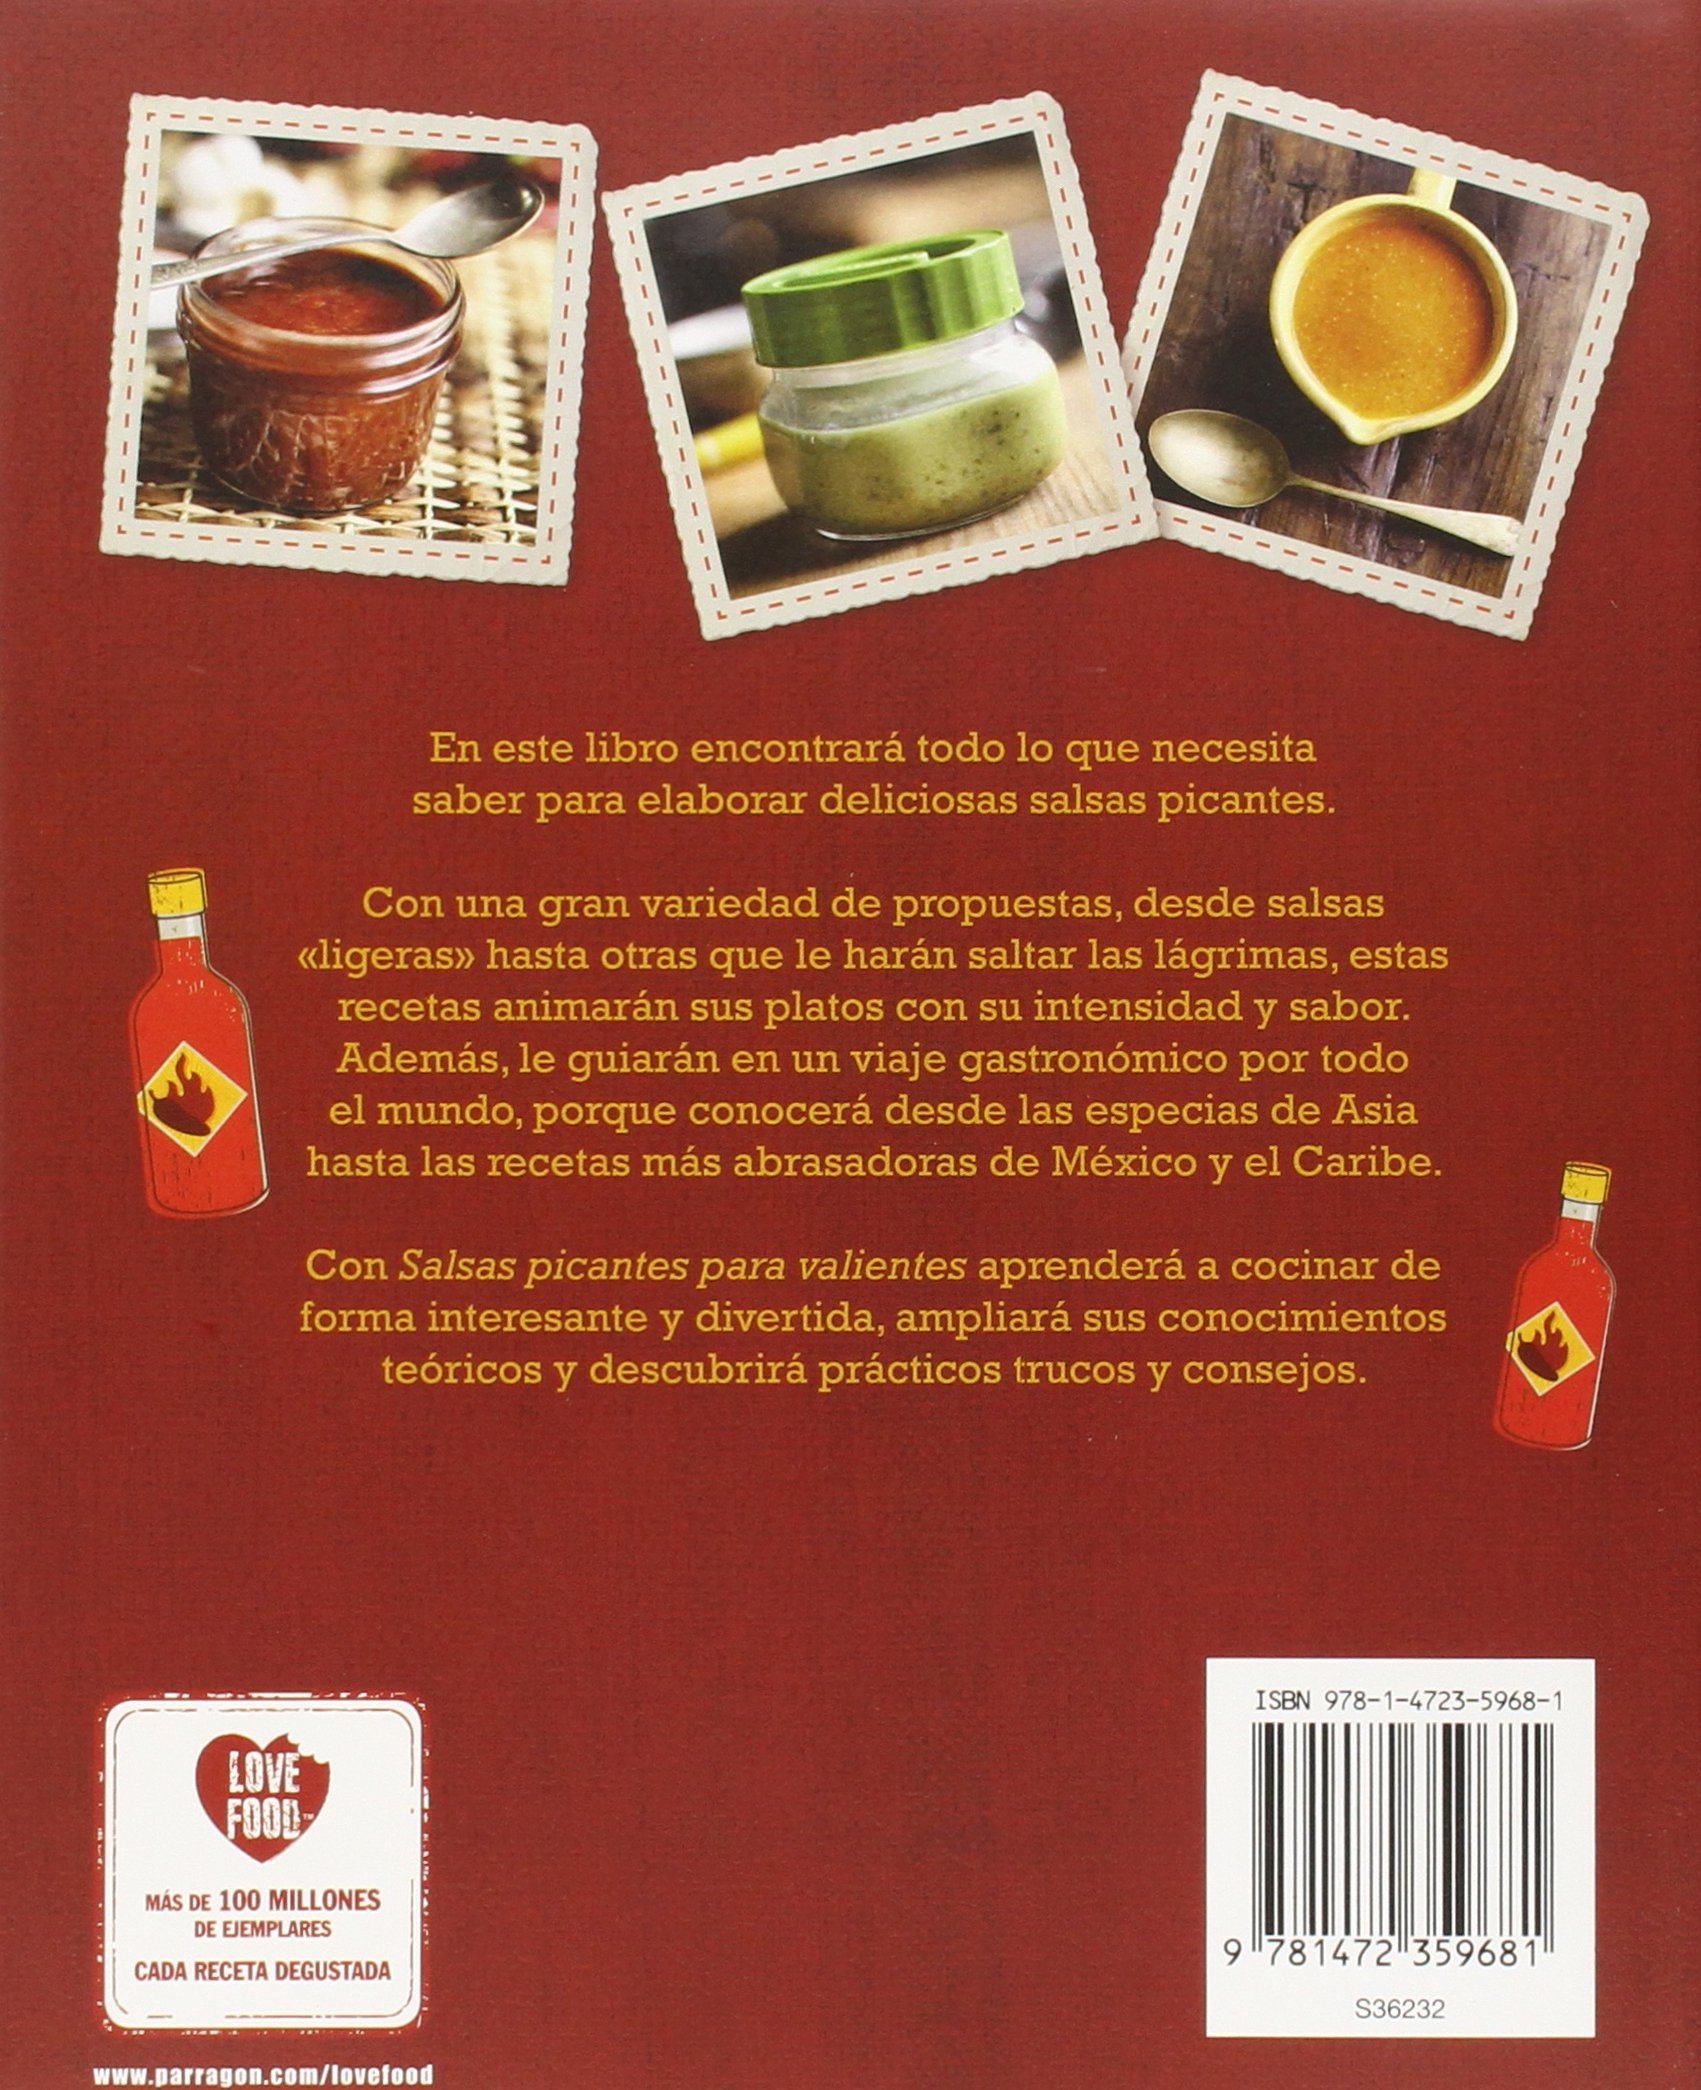 Salsas Picantes Para Valientes (Food Heroes) (Spanish Edition): Parragon Books: 9781472359681: Amazon.com: Books